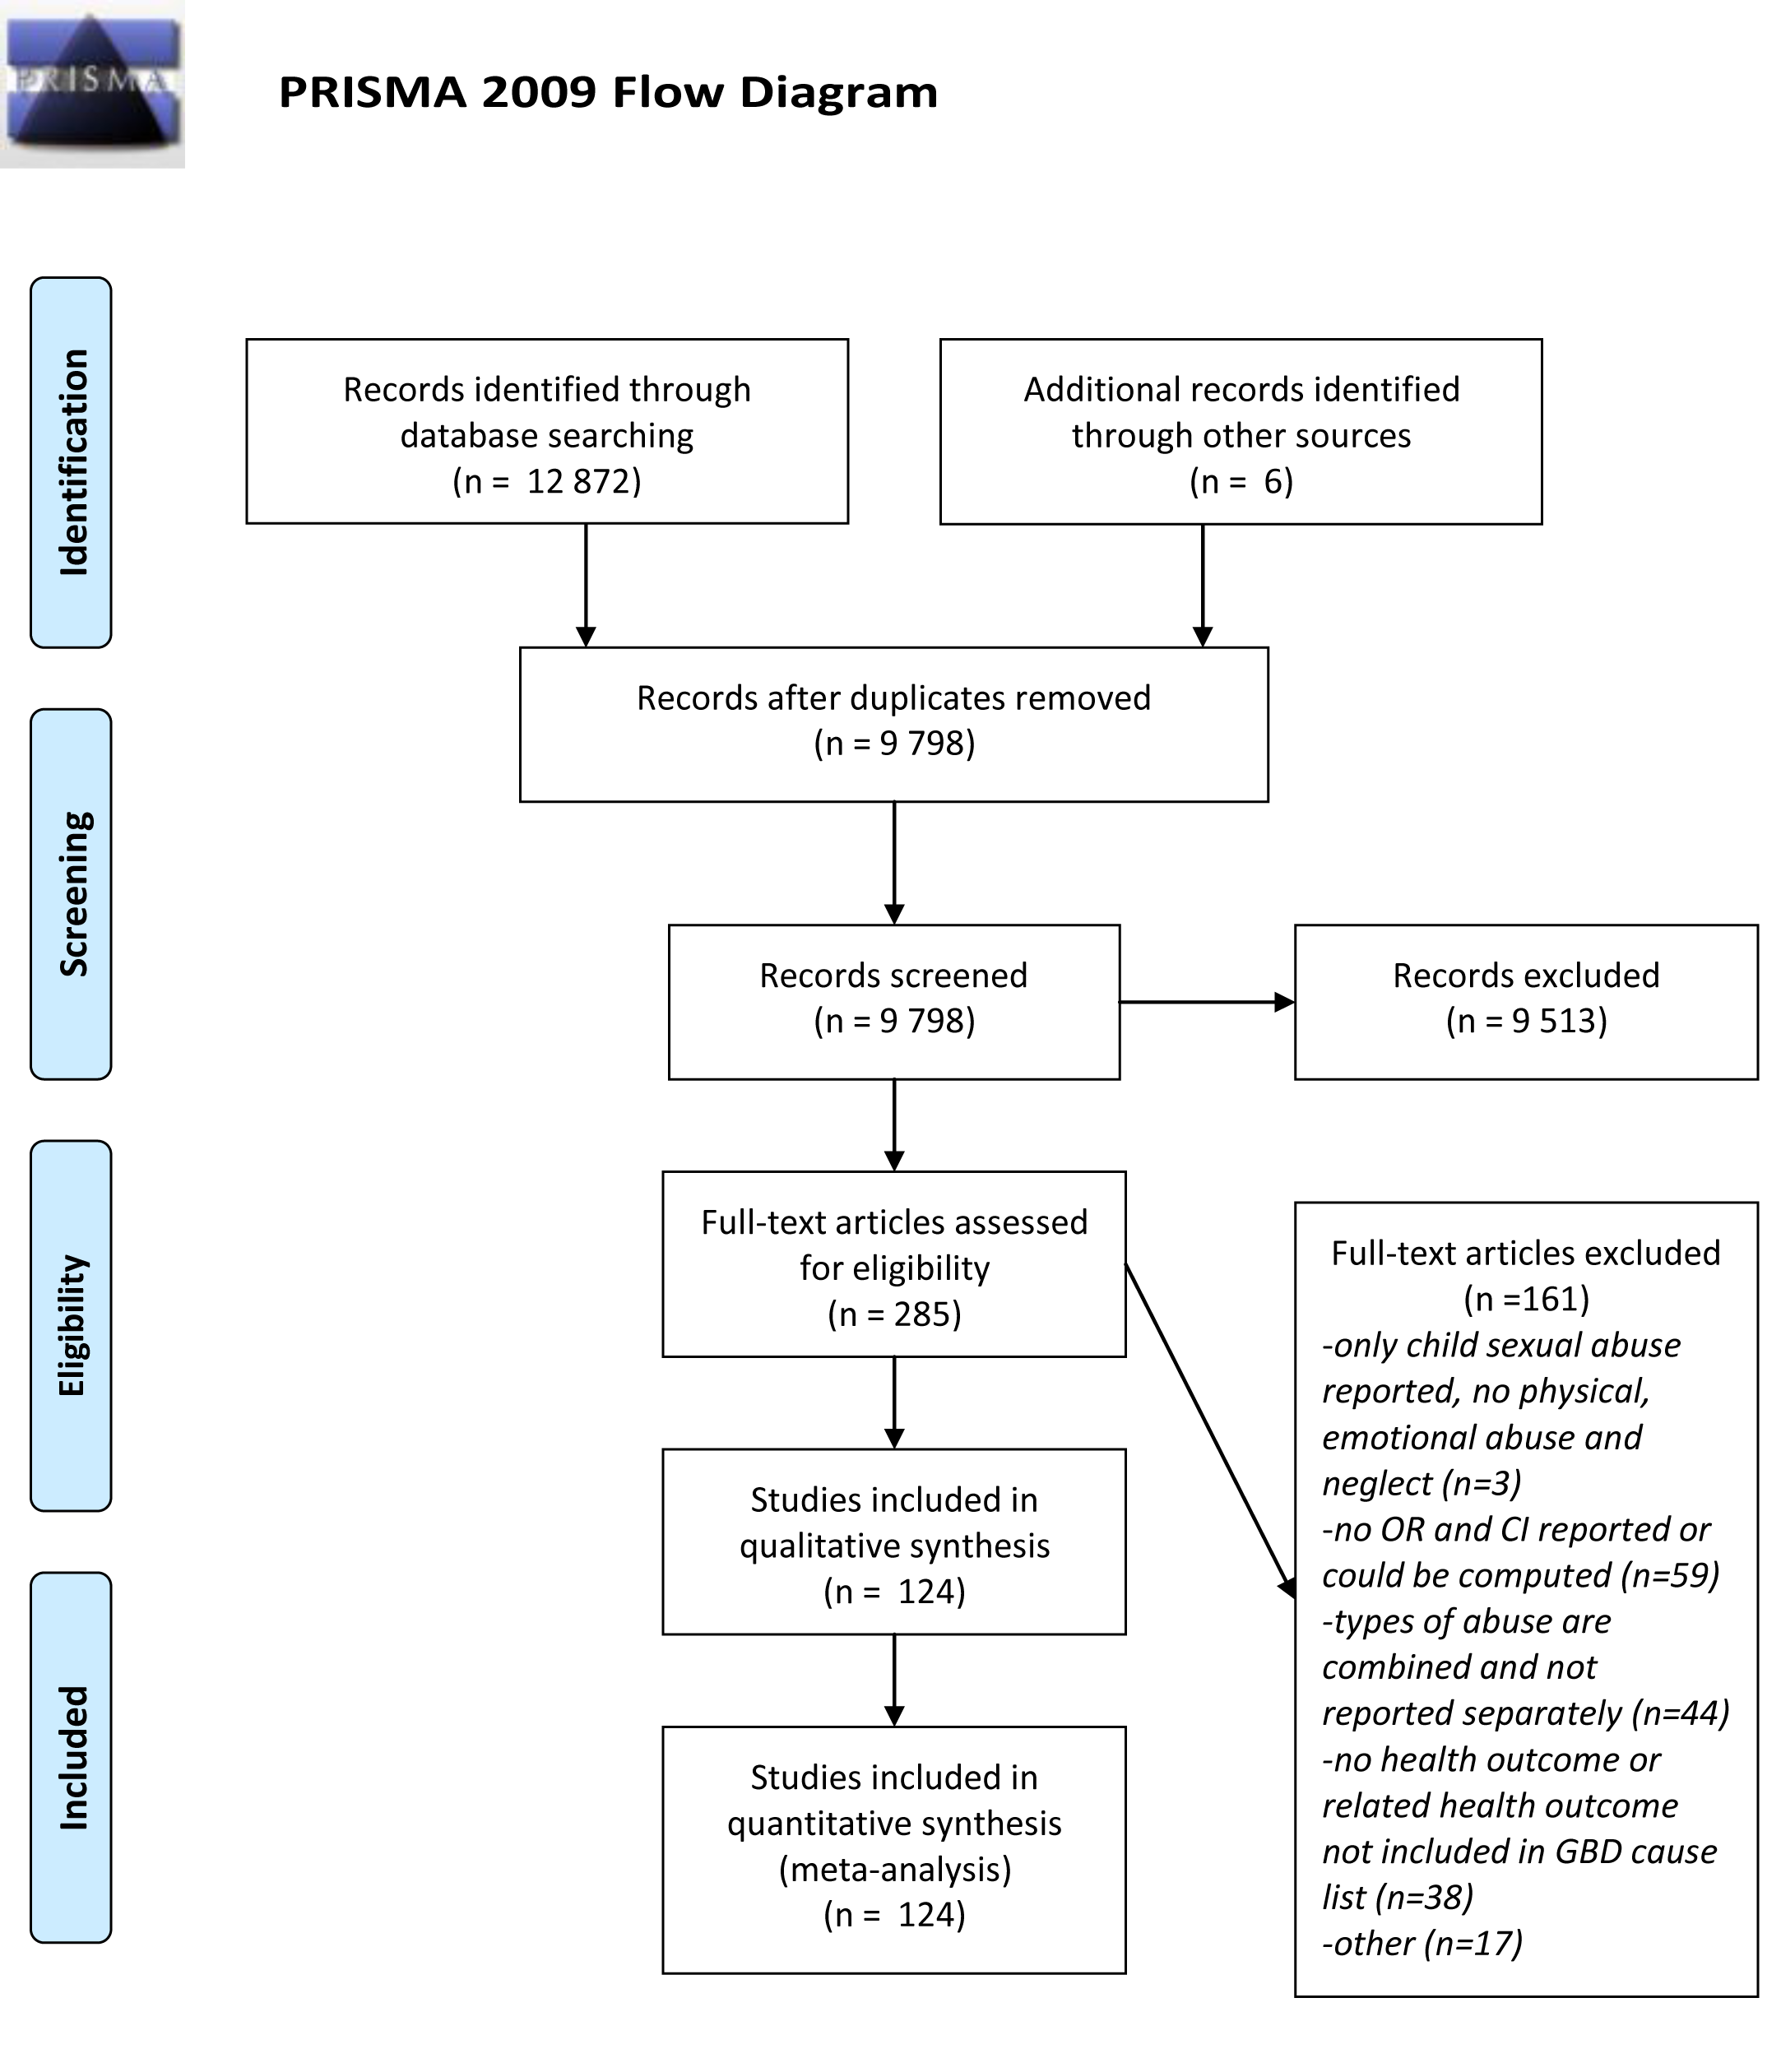 PRISMA flow diagram showing process of study selection for inclusion in systematic review and meta-analyses.